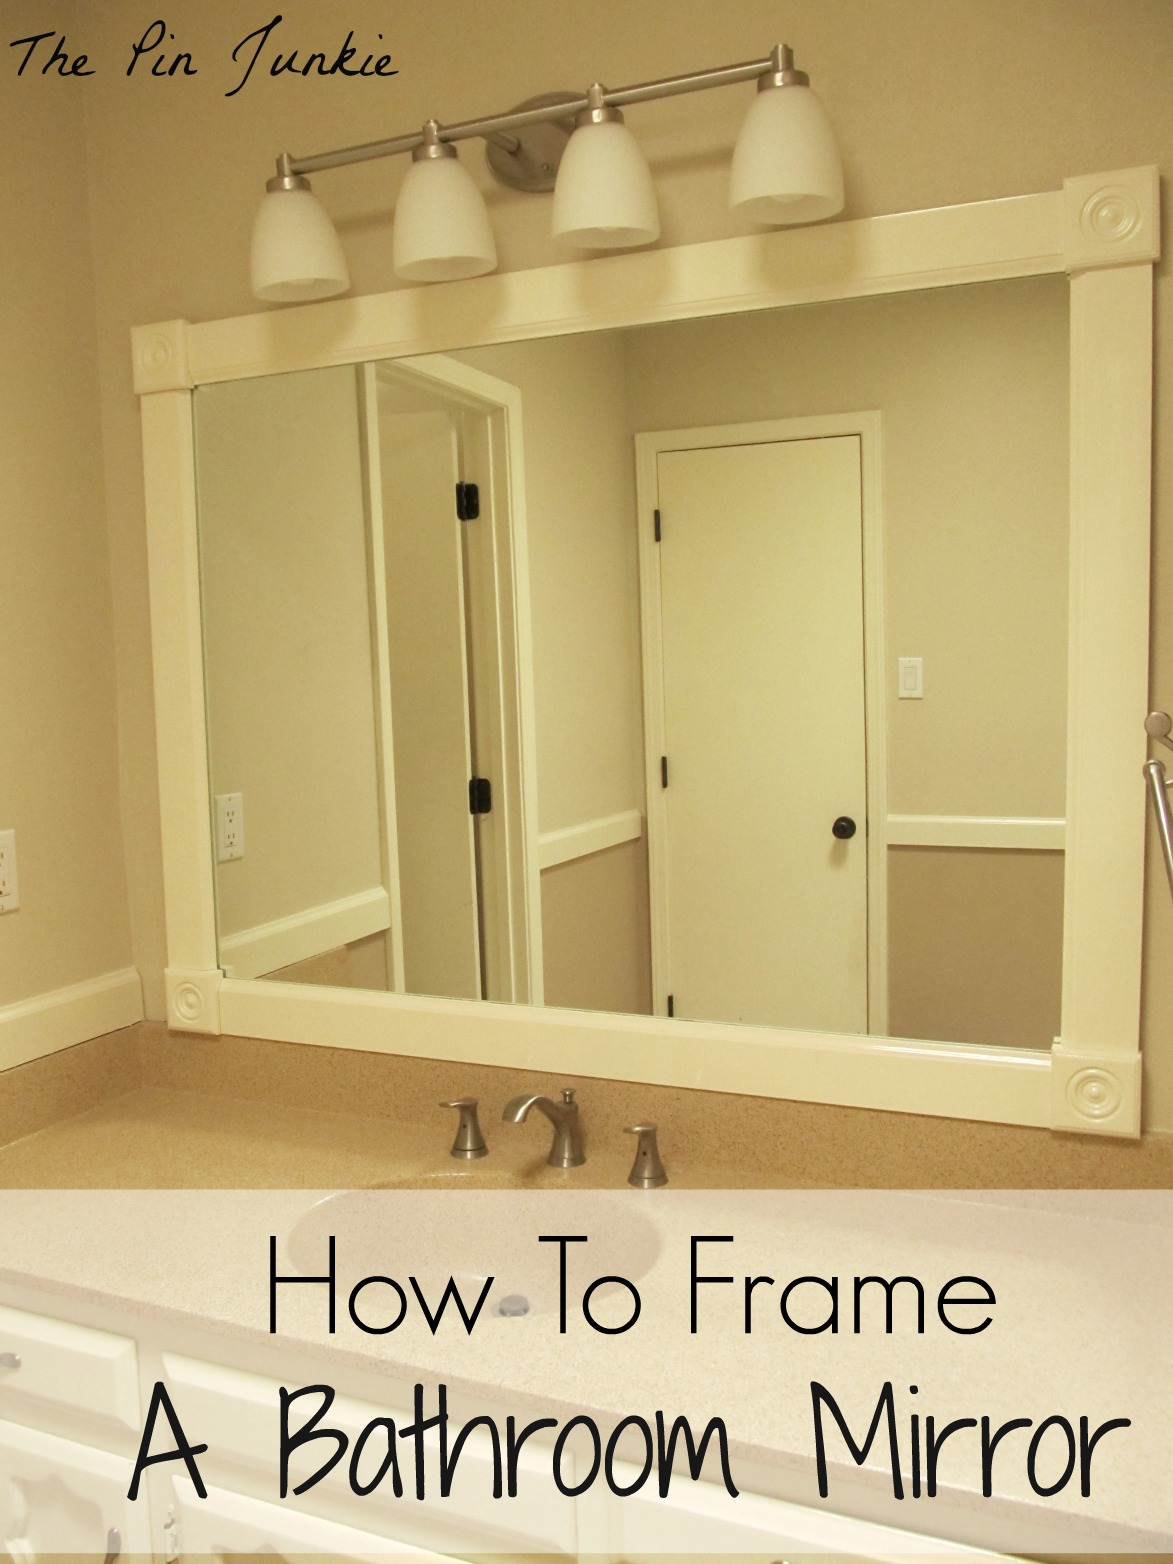 m pinterest diy nongzi ideas bathroom design framing frame luxury mirror framed of co mirrors